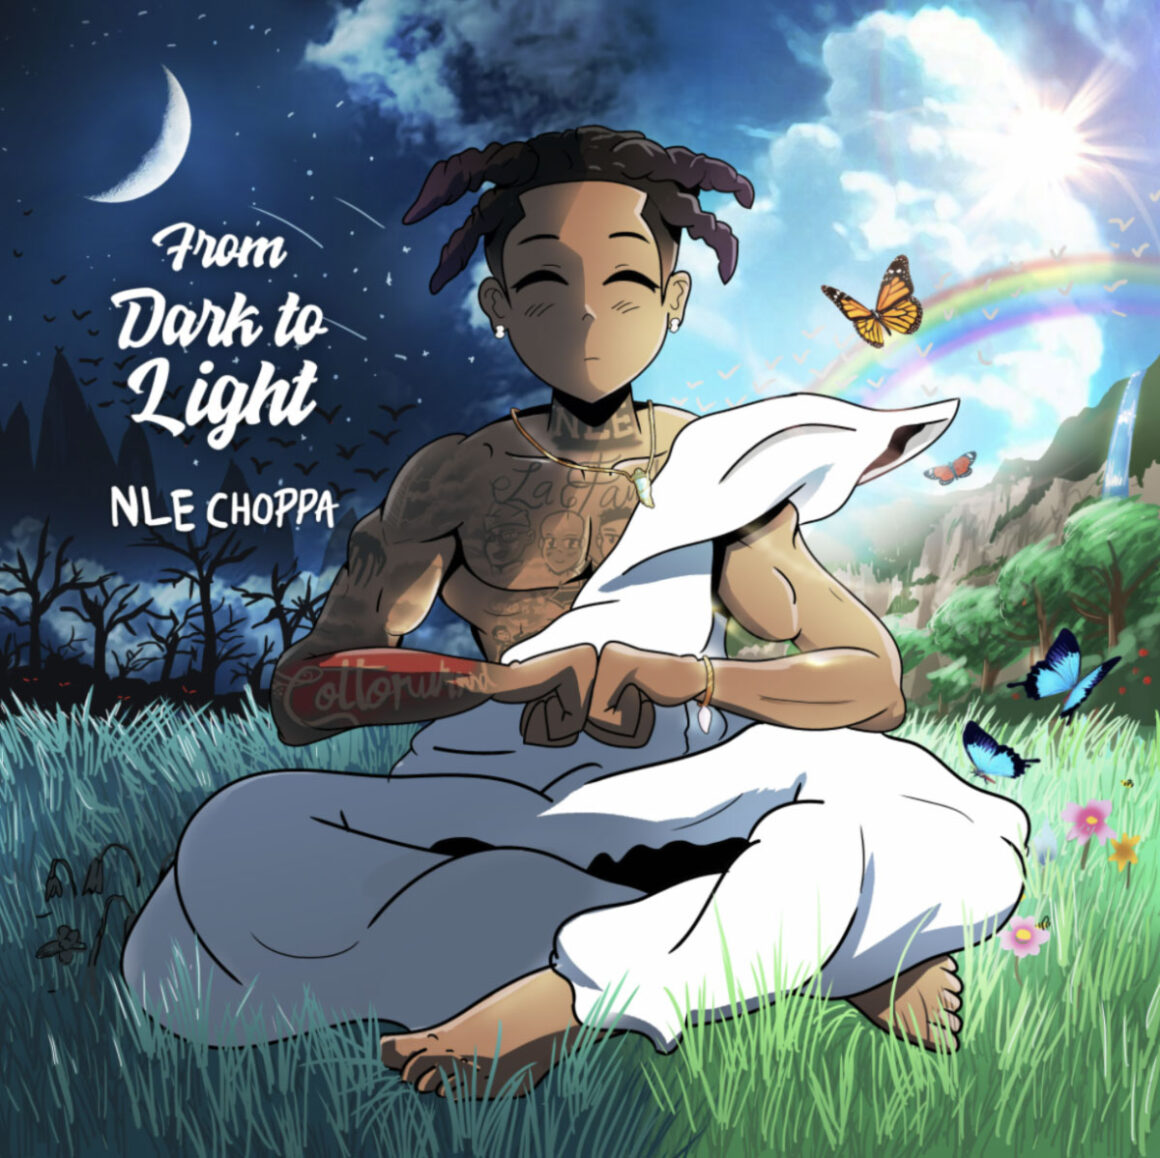 NLE Choppa - From Dark To Light